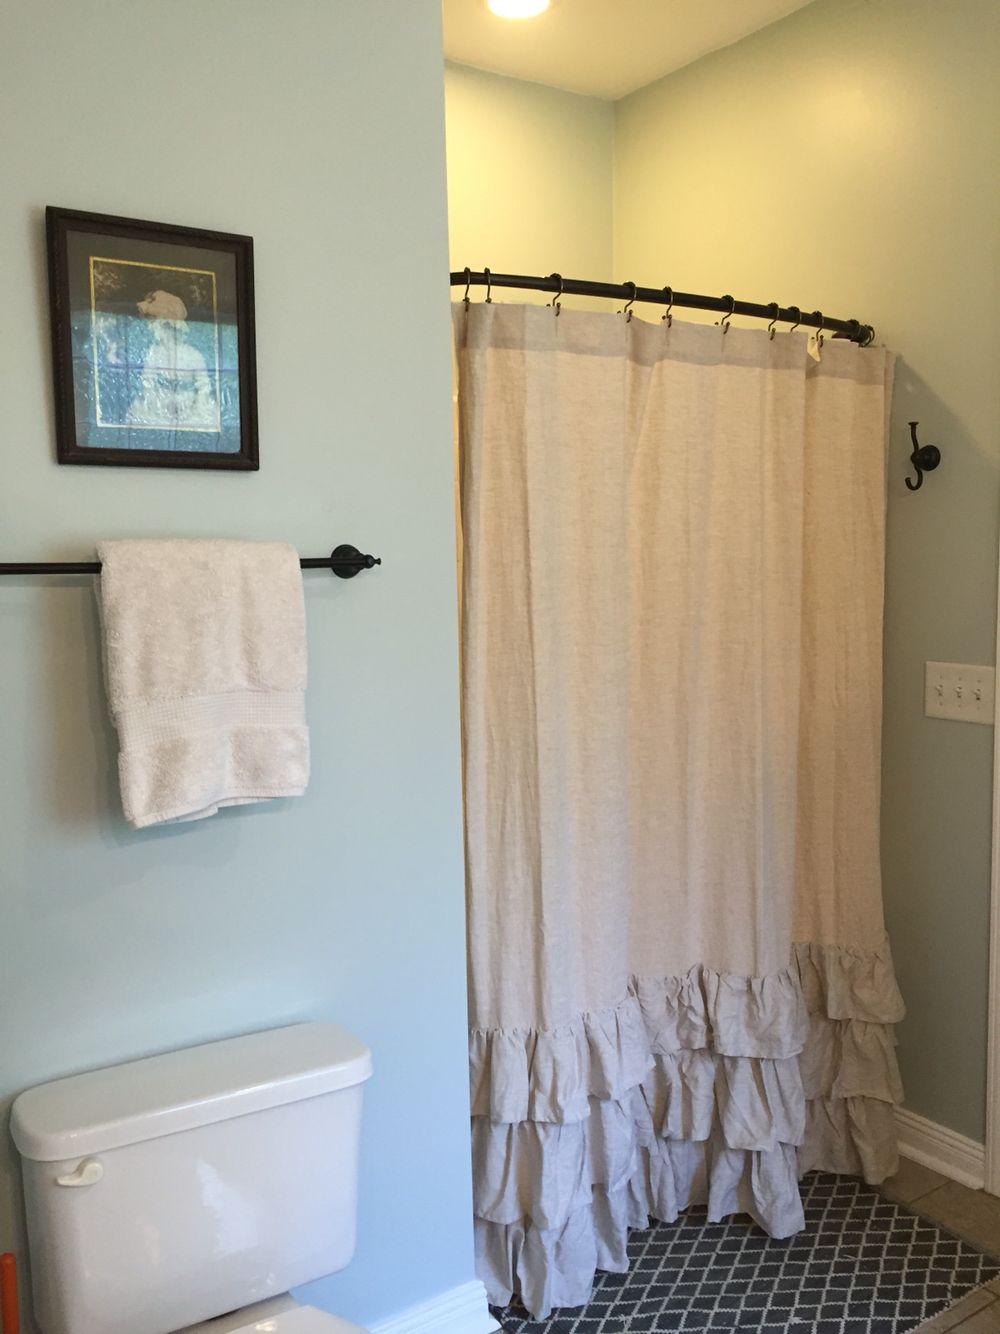 Our New Bathroom Sherwin Williams Sea Salt An Antique Framed Picture And Pottery Barn Linen Ruffle Shower Curtain